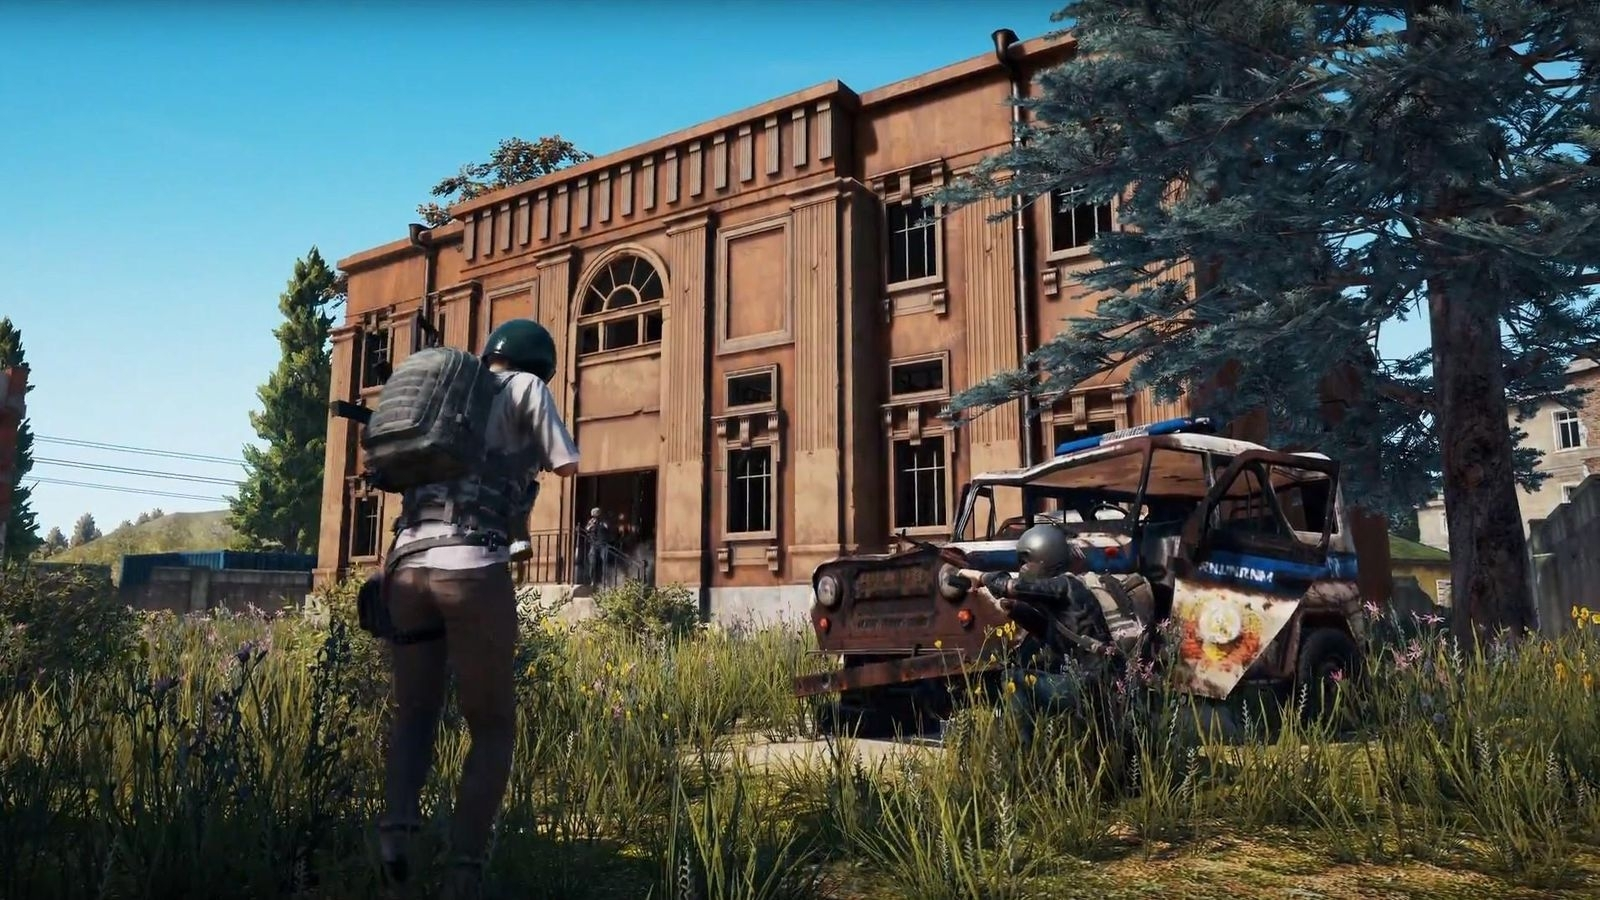 16 Luxury Pubg Wallpaper Iphone 6: PlayerUnknown's Battlegrounds Developer Backtracks After